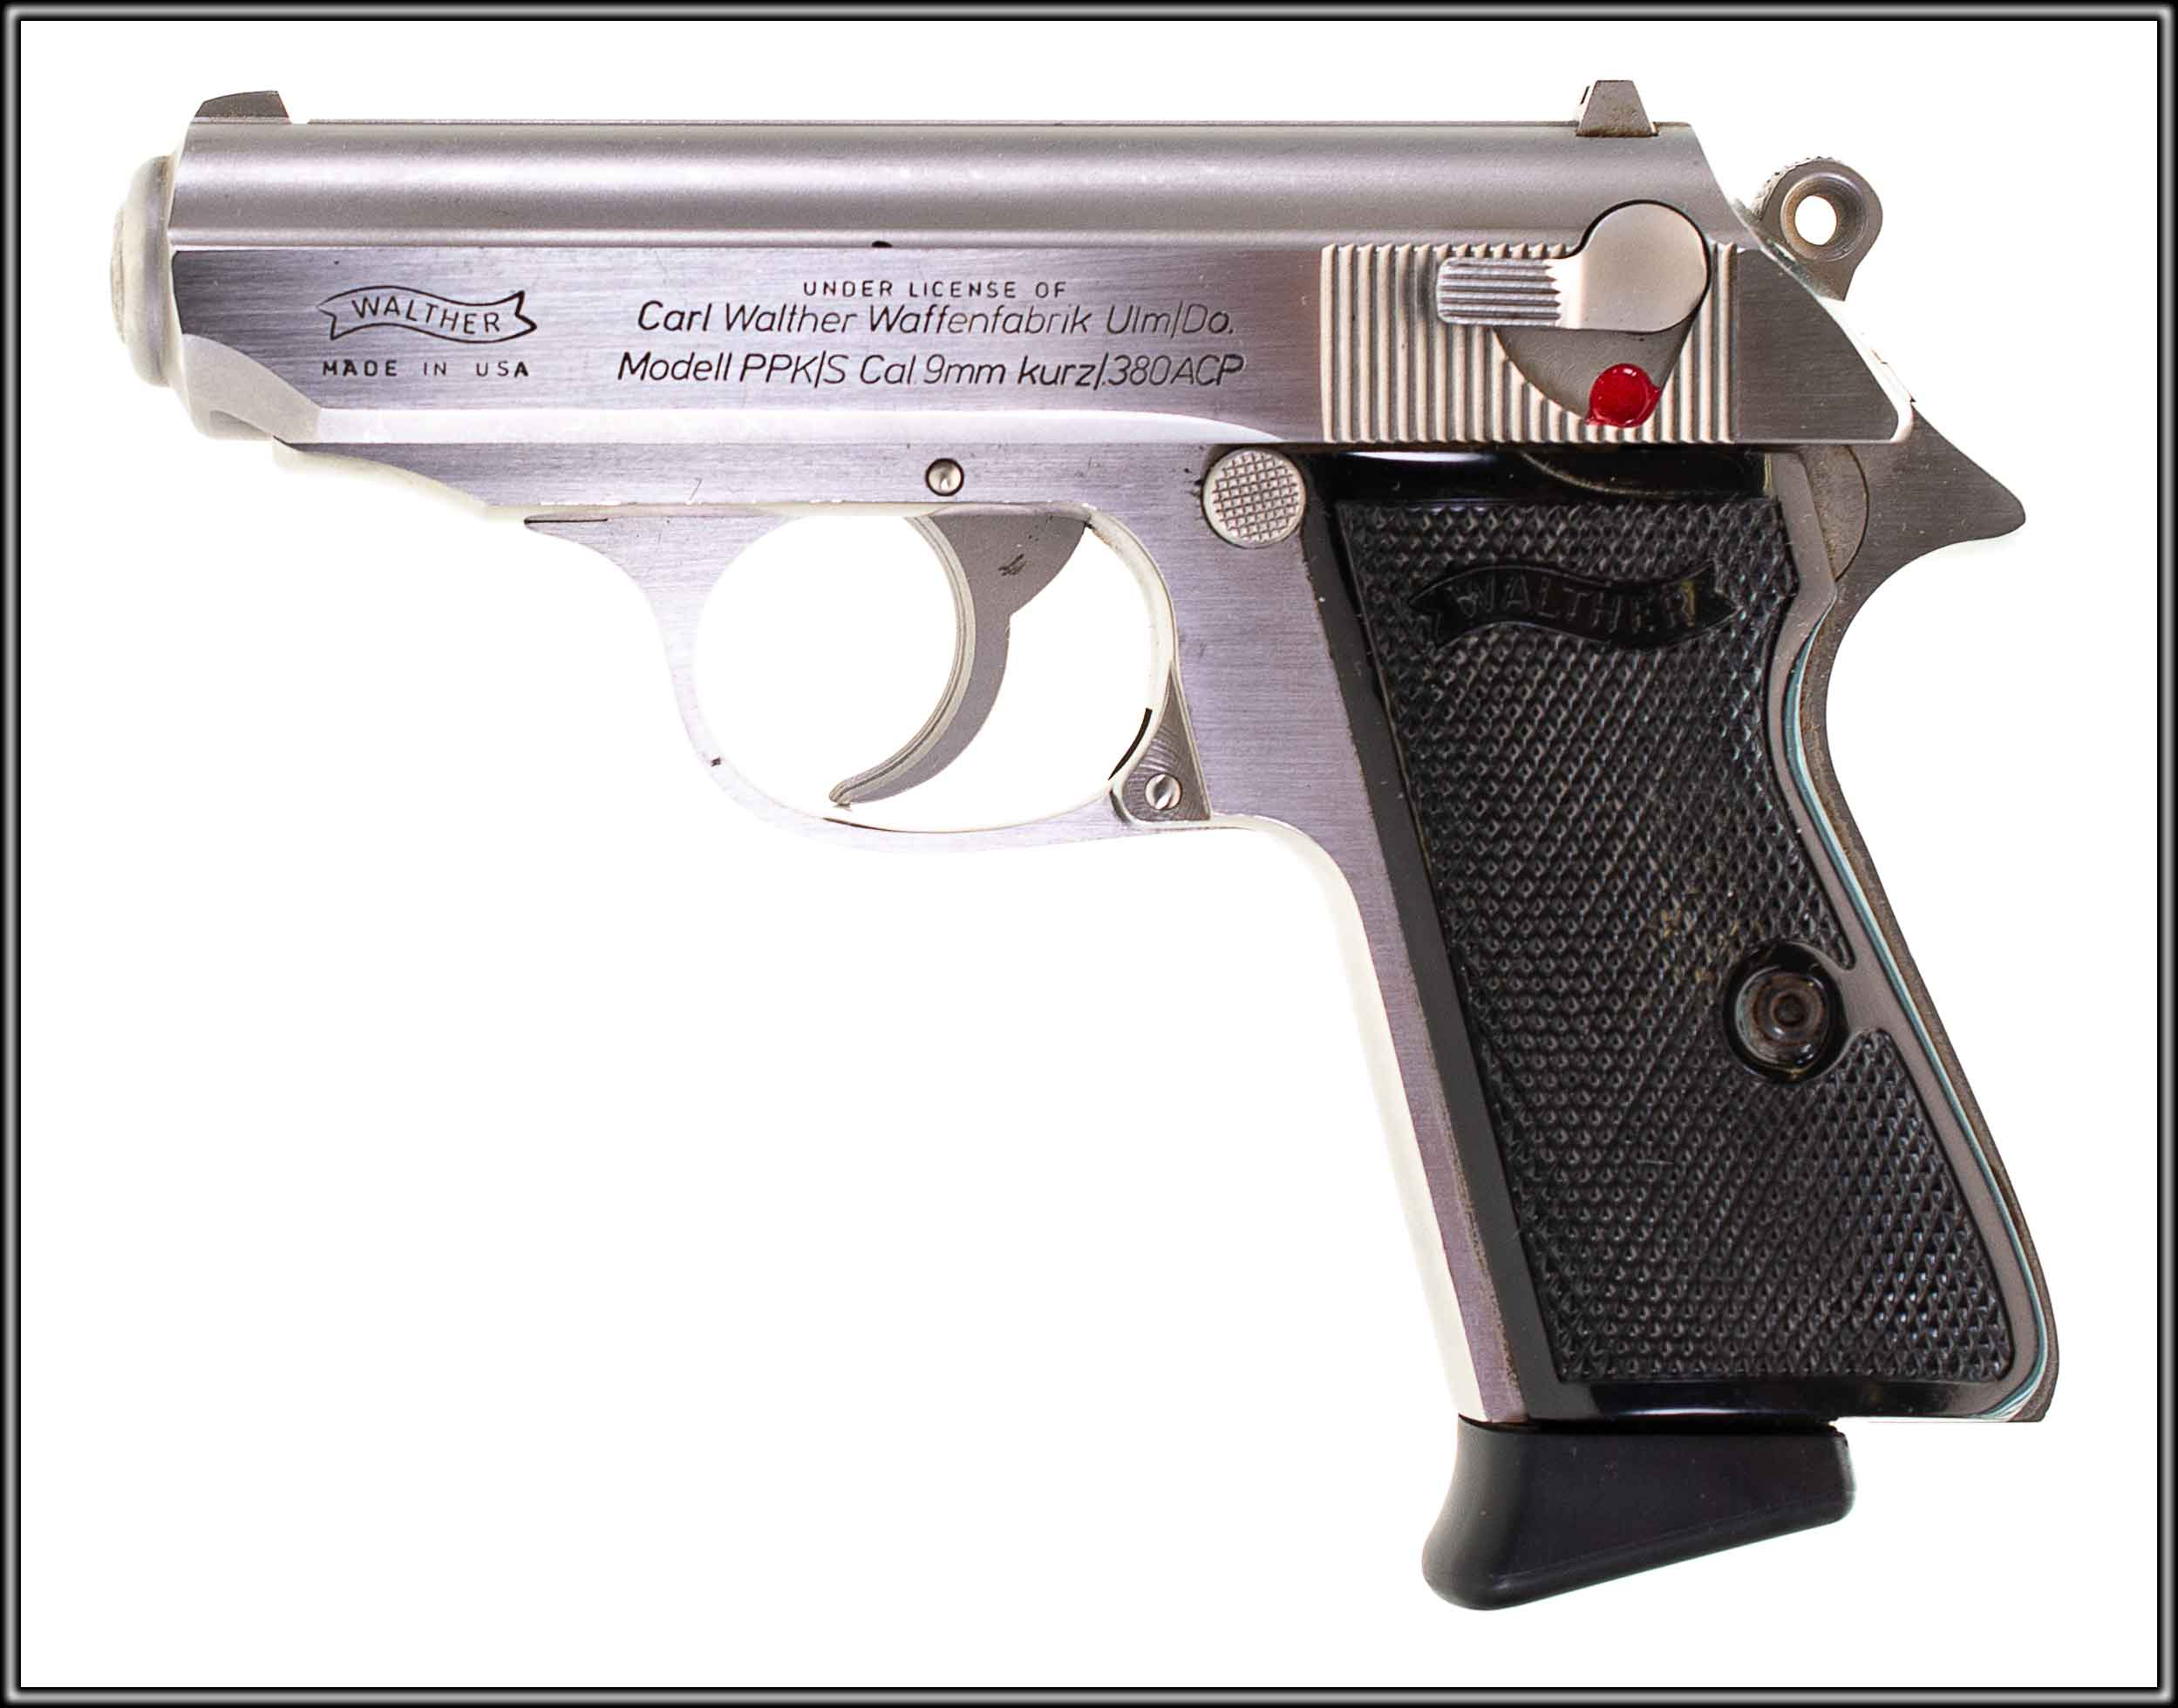 WALTHER PPK/S [380 ACP] (Auction ID: 14643380, End Time